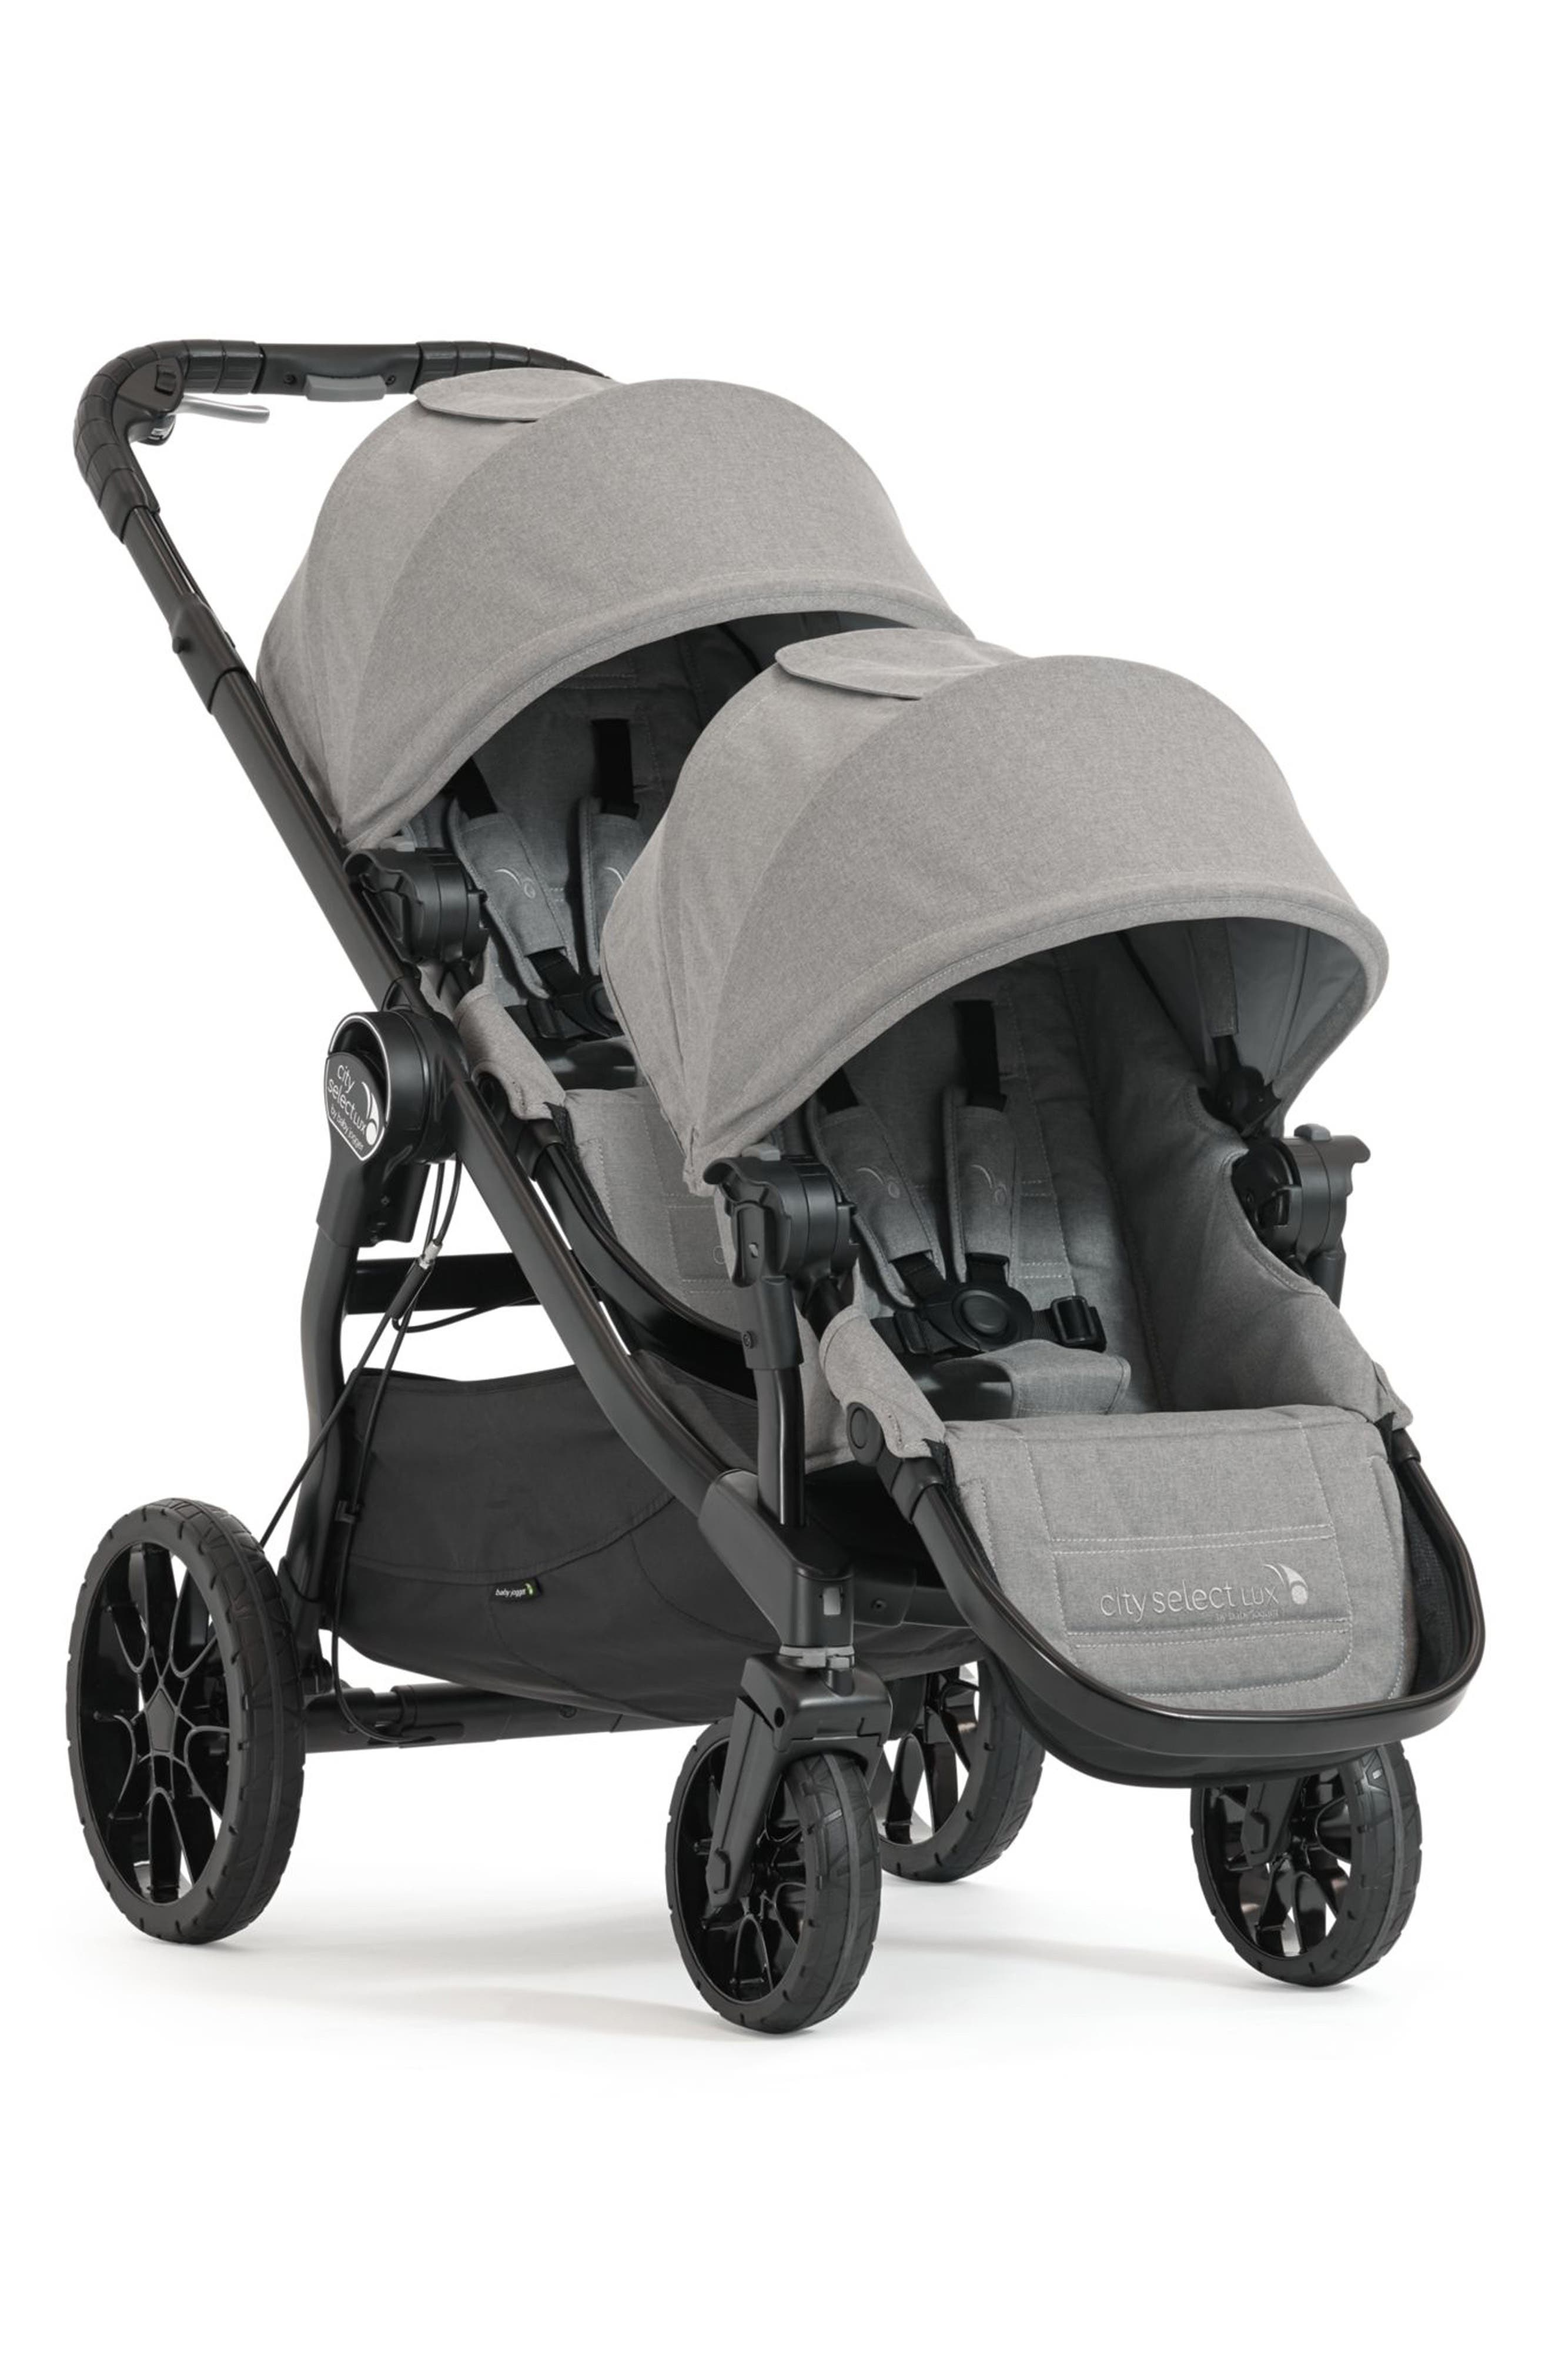 Alternate Image 1 Selected - Baby Jogger Second Seat for City Select LUX Stroller